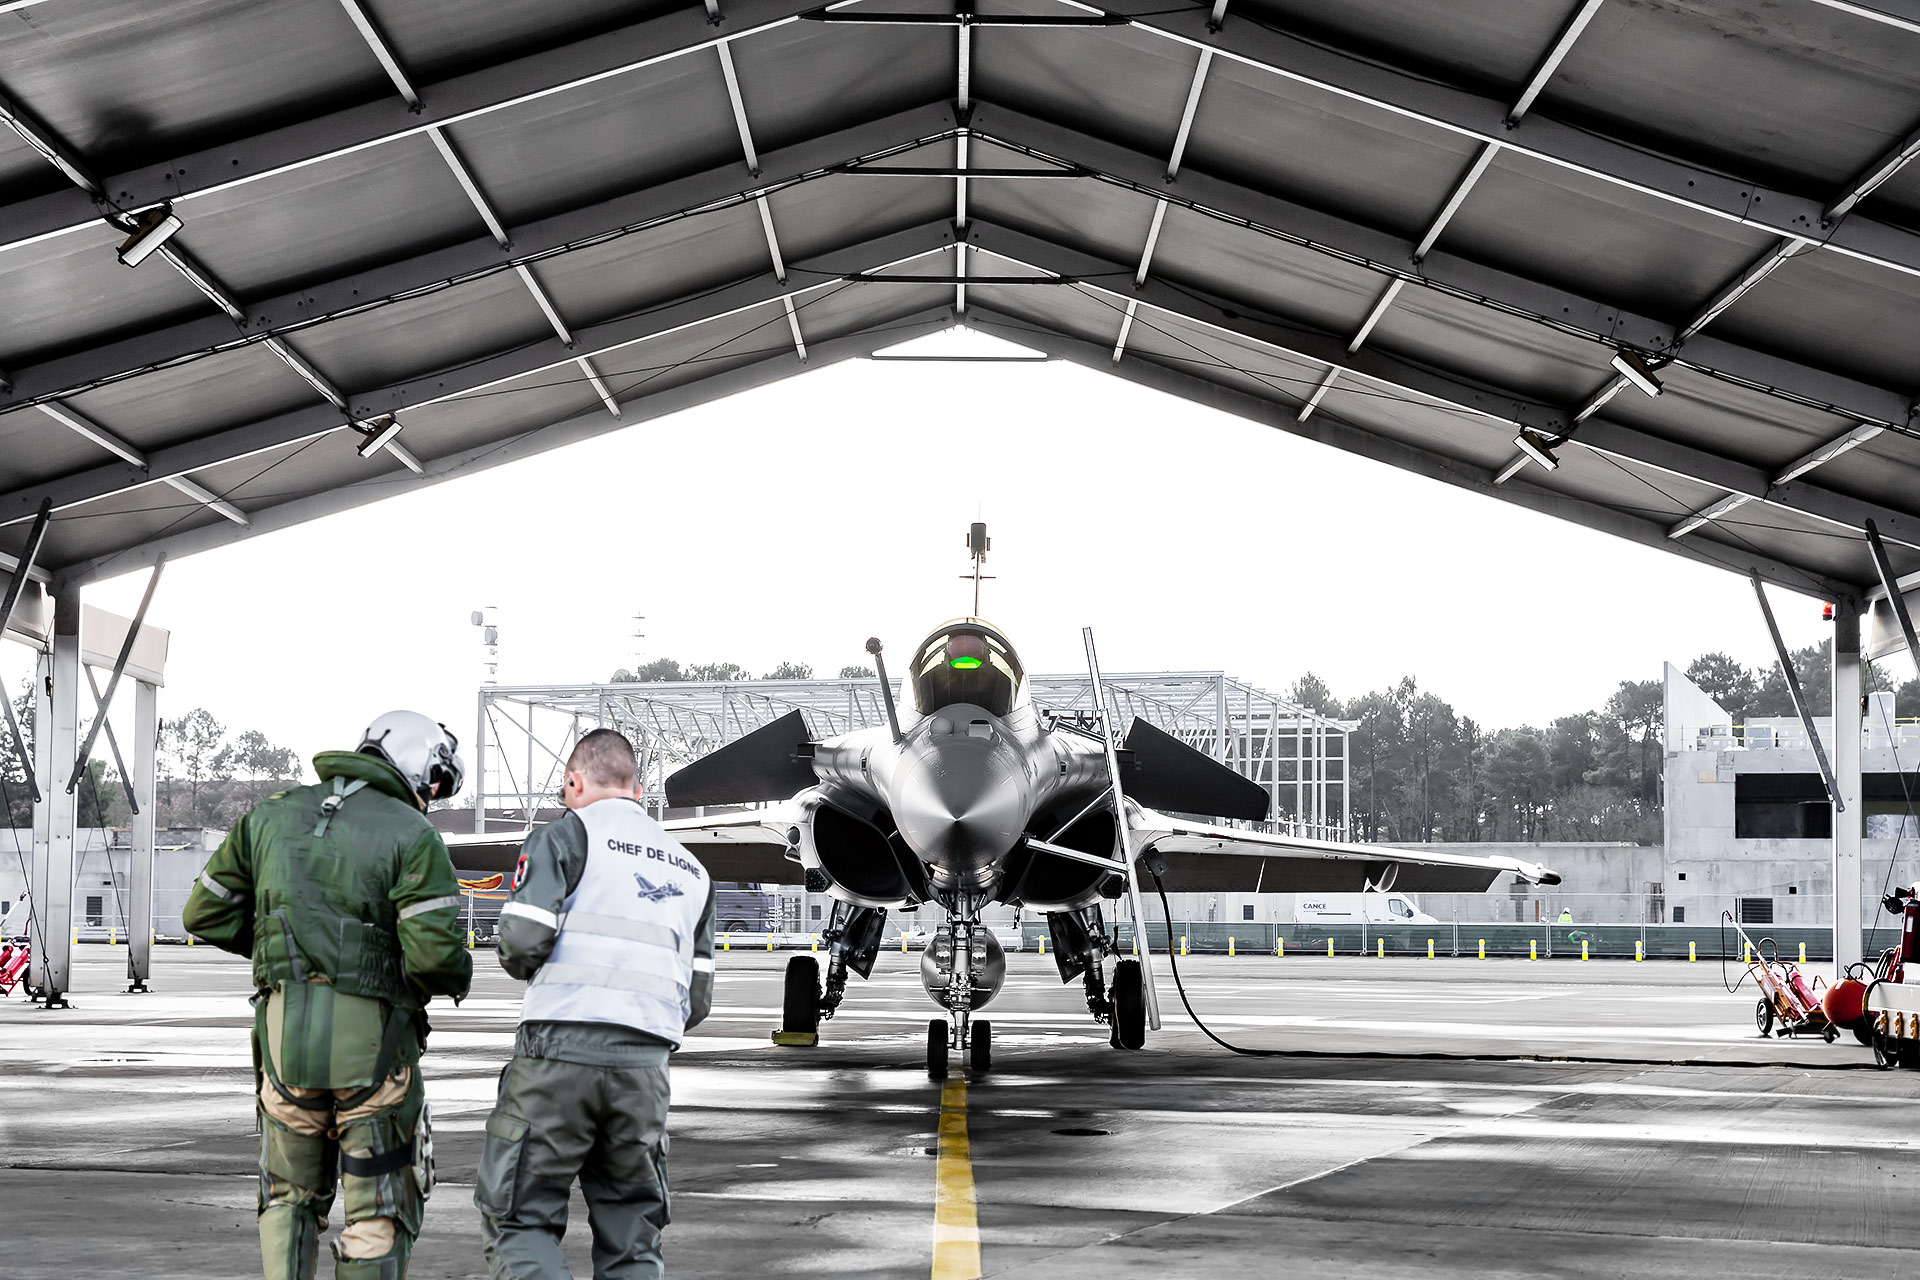 Behind the scenes of the B118 airforce base